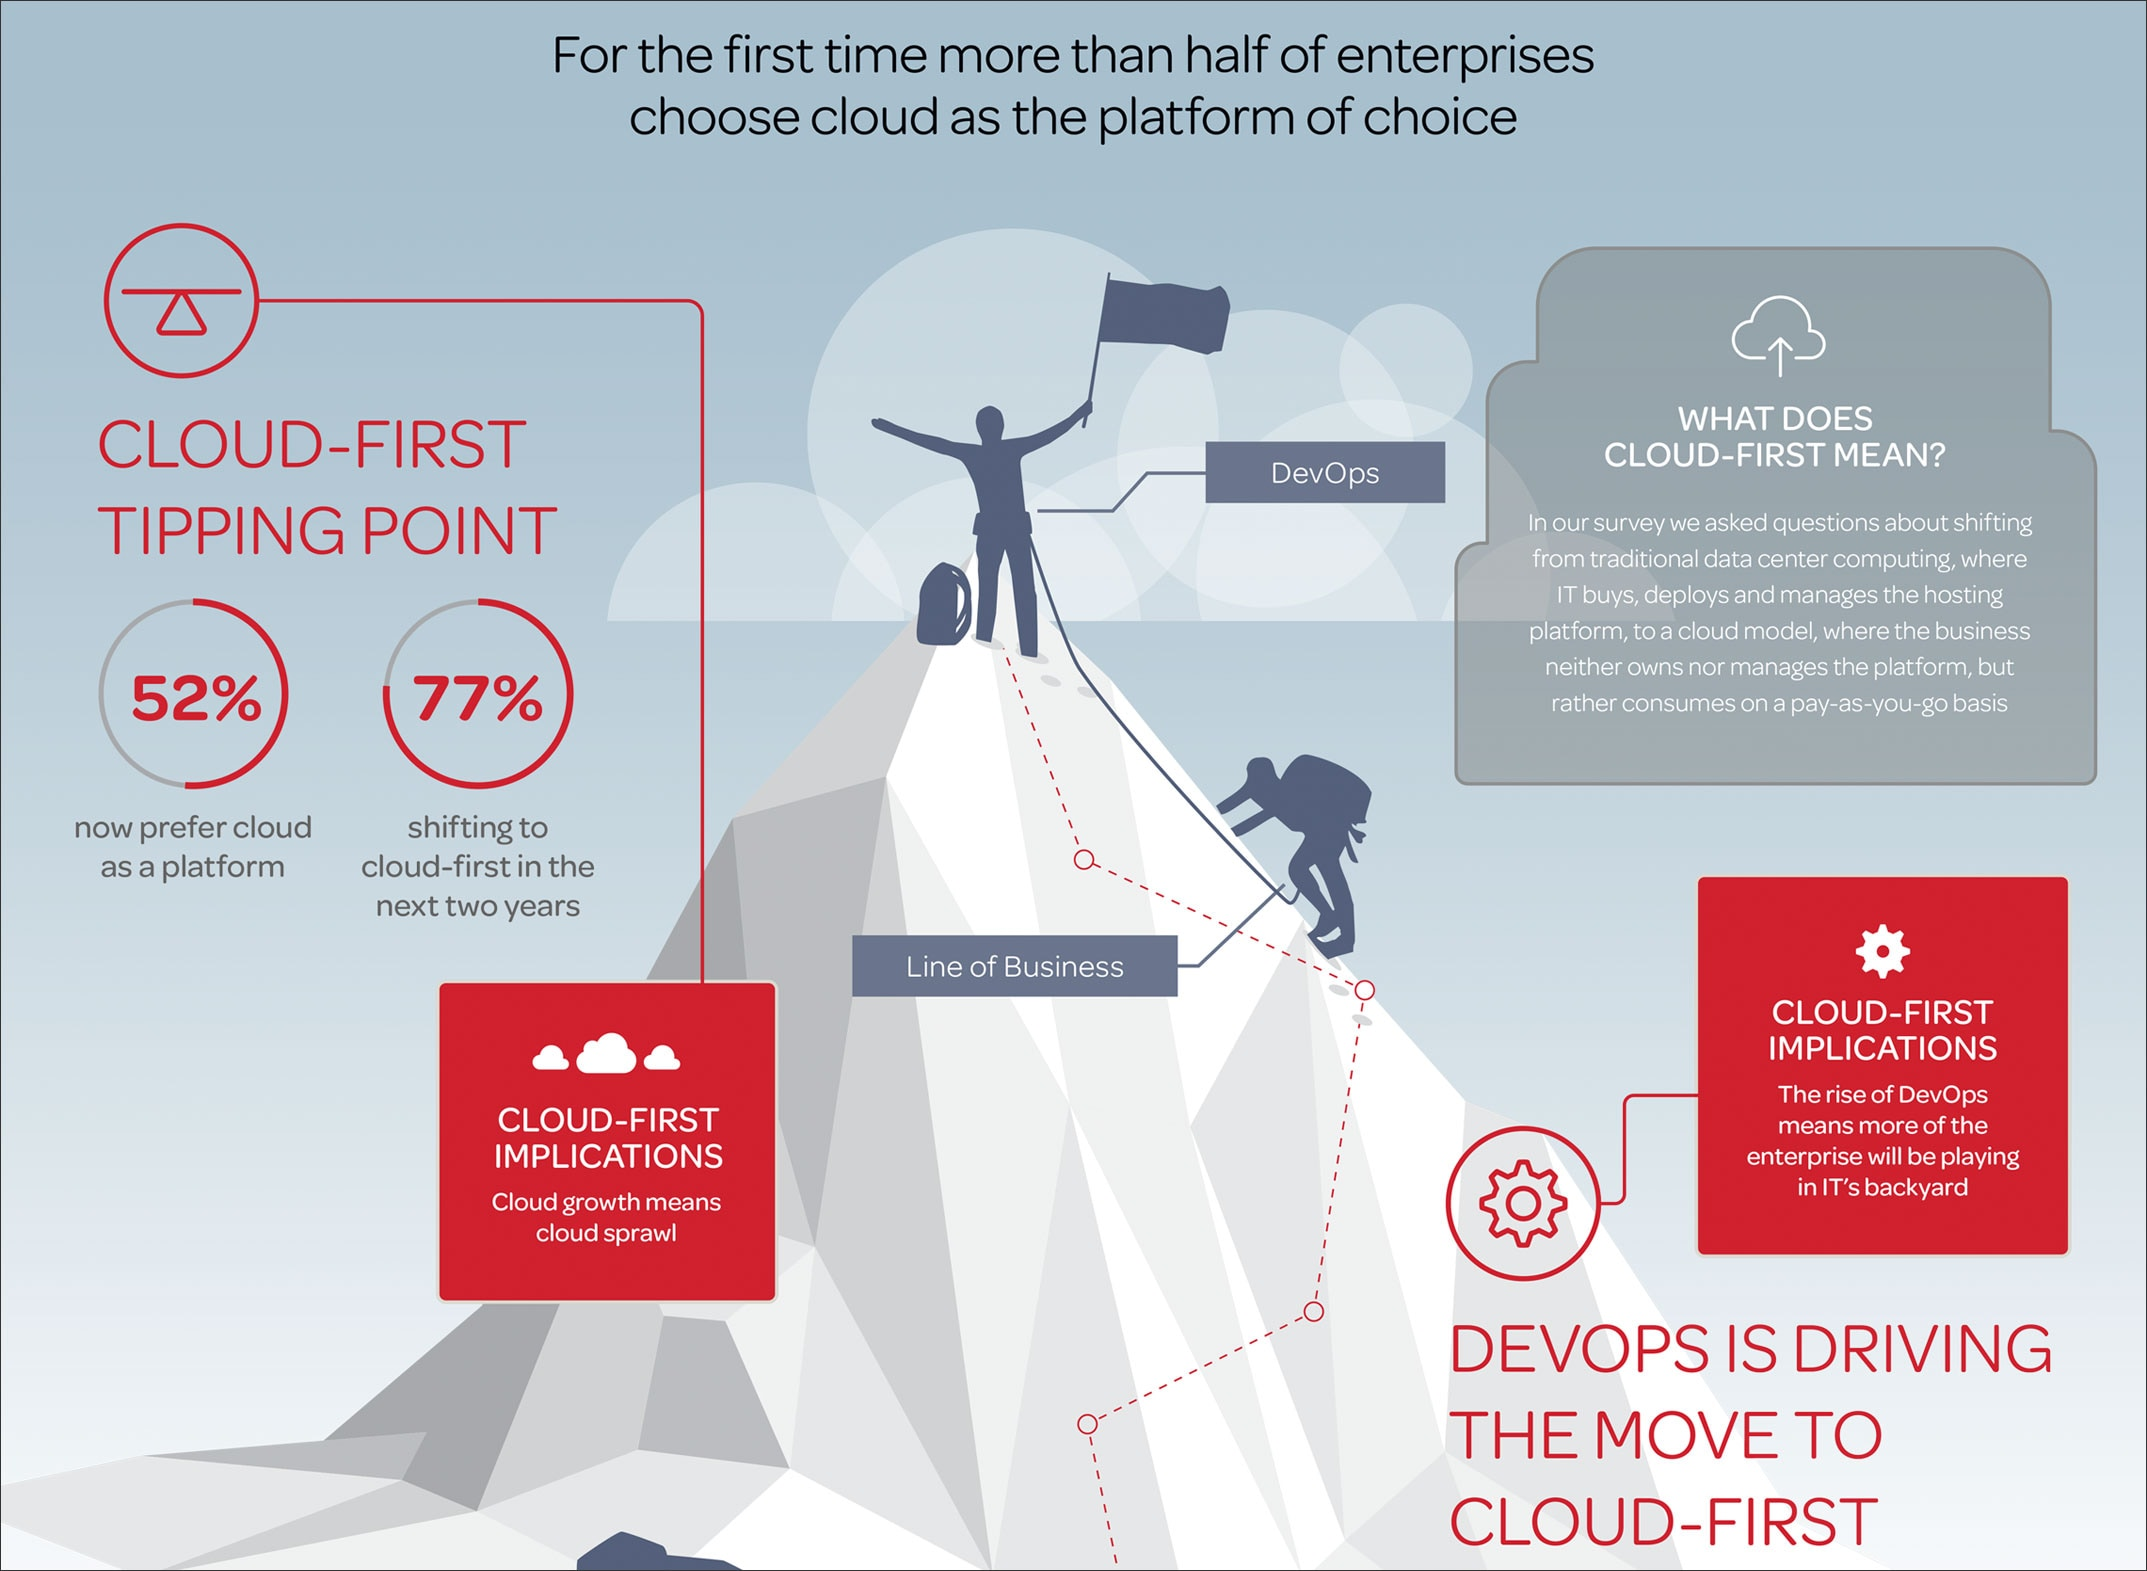 Cloud-first tipping point